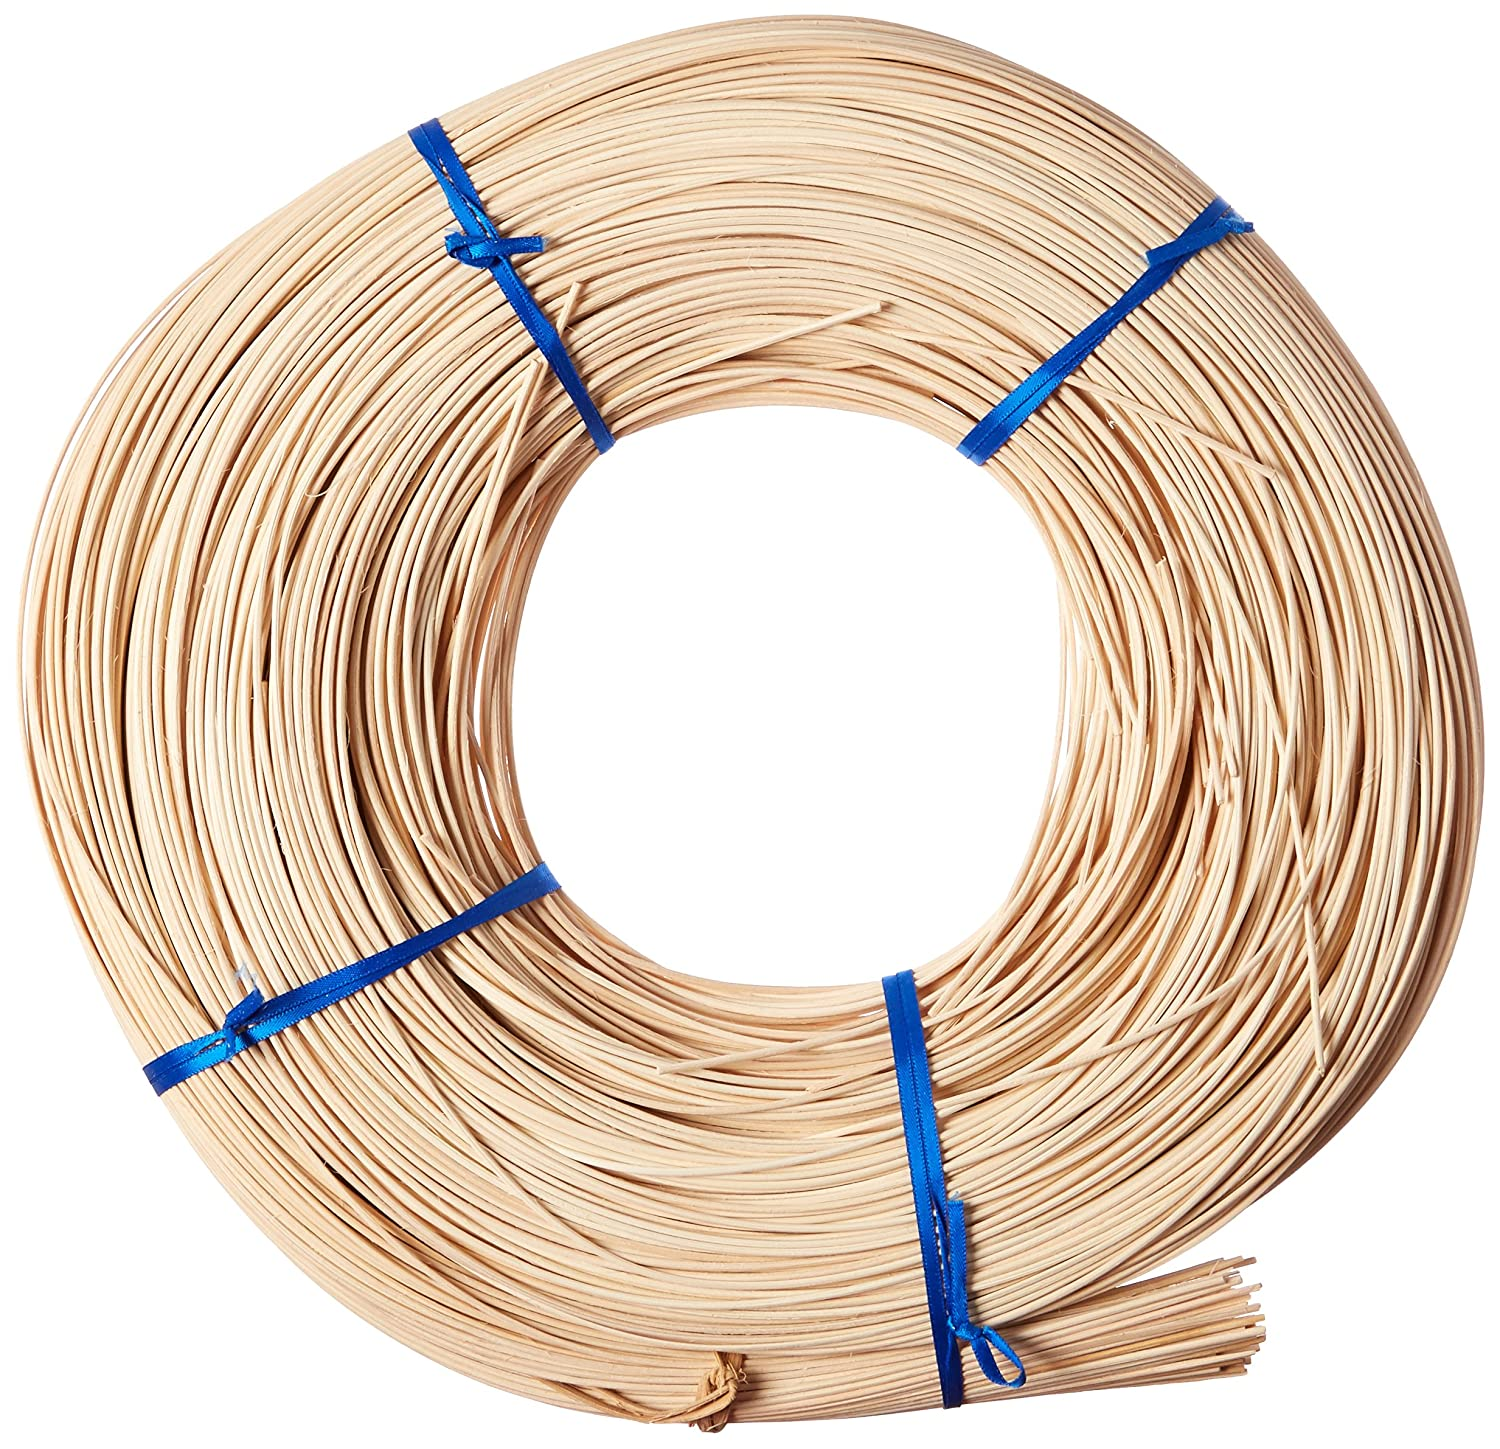 Commonwealth Basket Round Reed #2 1-3/4mm 1-Pound Coil, Approximately 1100-Feet 2RR